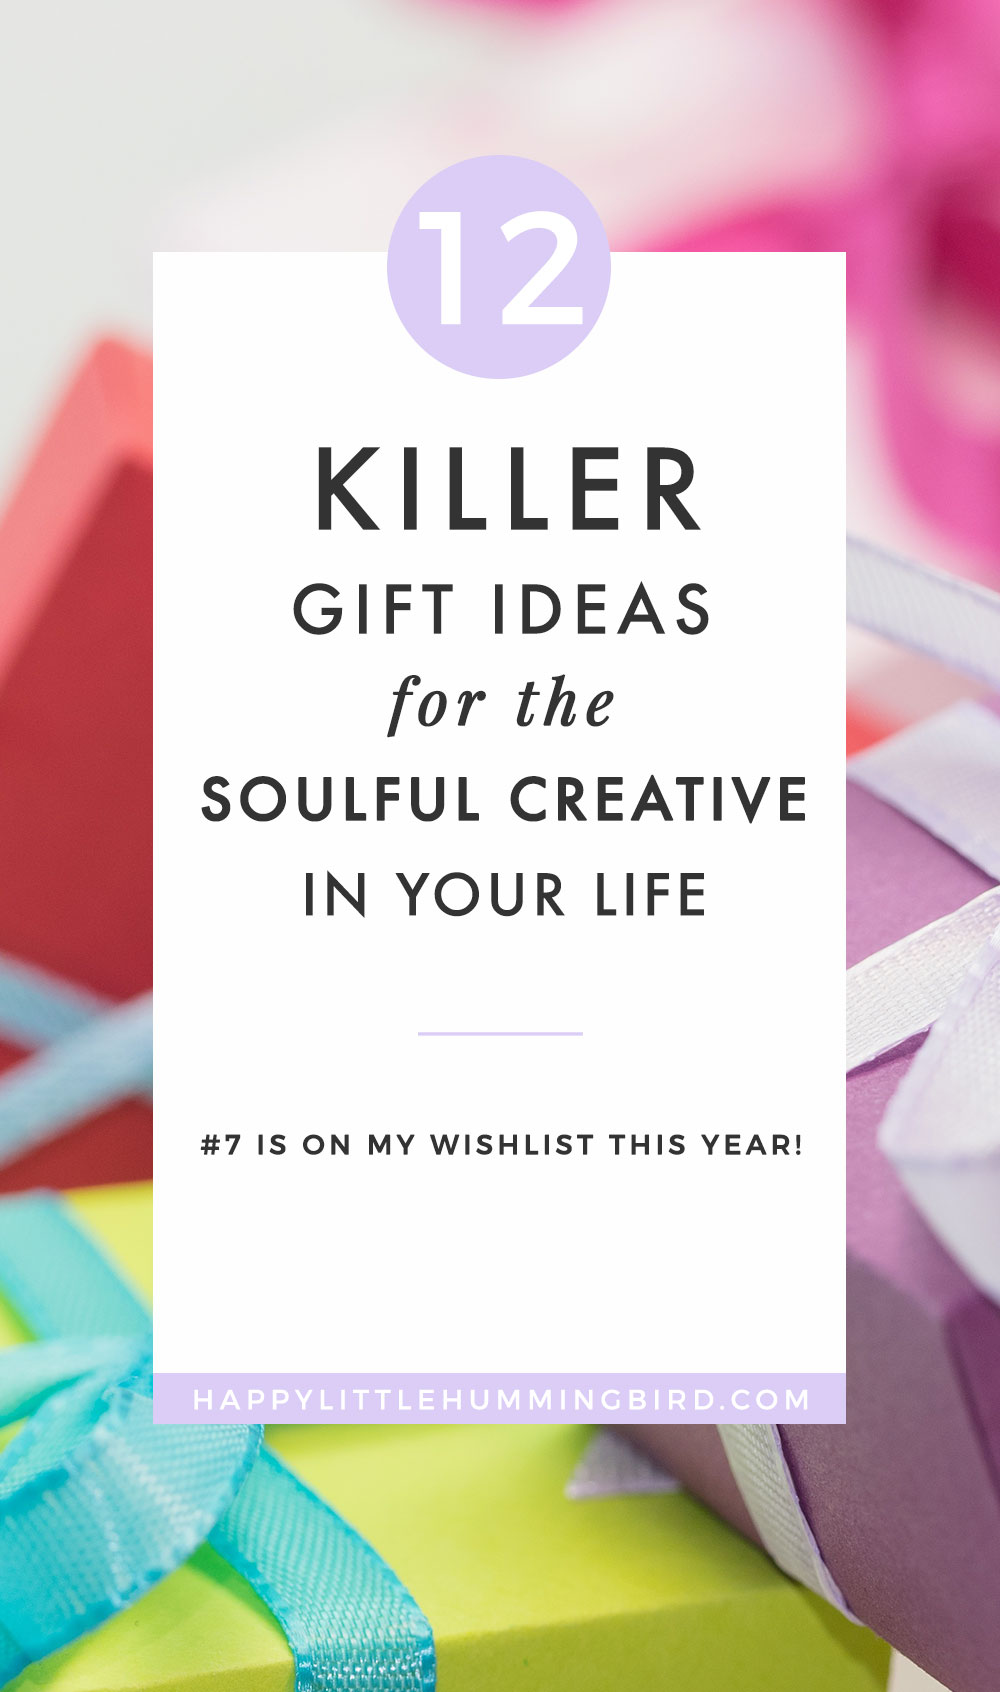 Are you still trying to find the   perfect   gift for the creative soul-sister in your life? If you're tired of gifting generic fruity hand lotion each year, then check out my hand-picked gift guide to help you find a meaningful, KILLER gift that every creative soul-sister will LOVE!